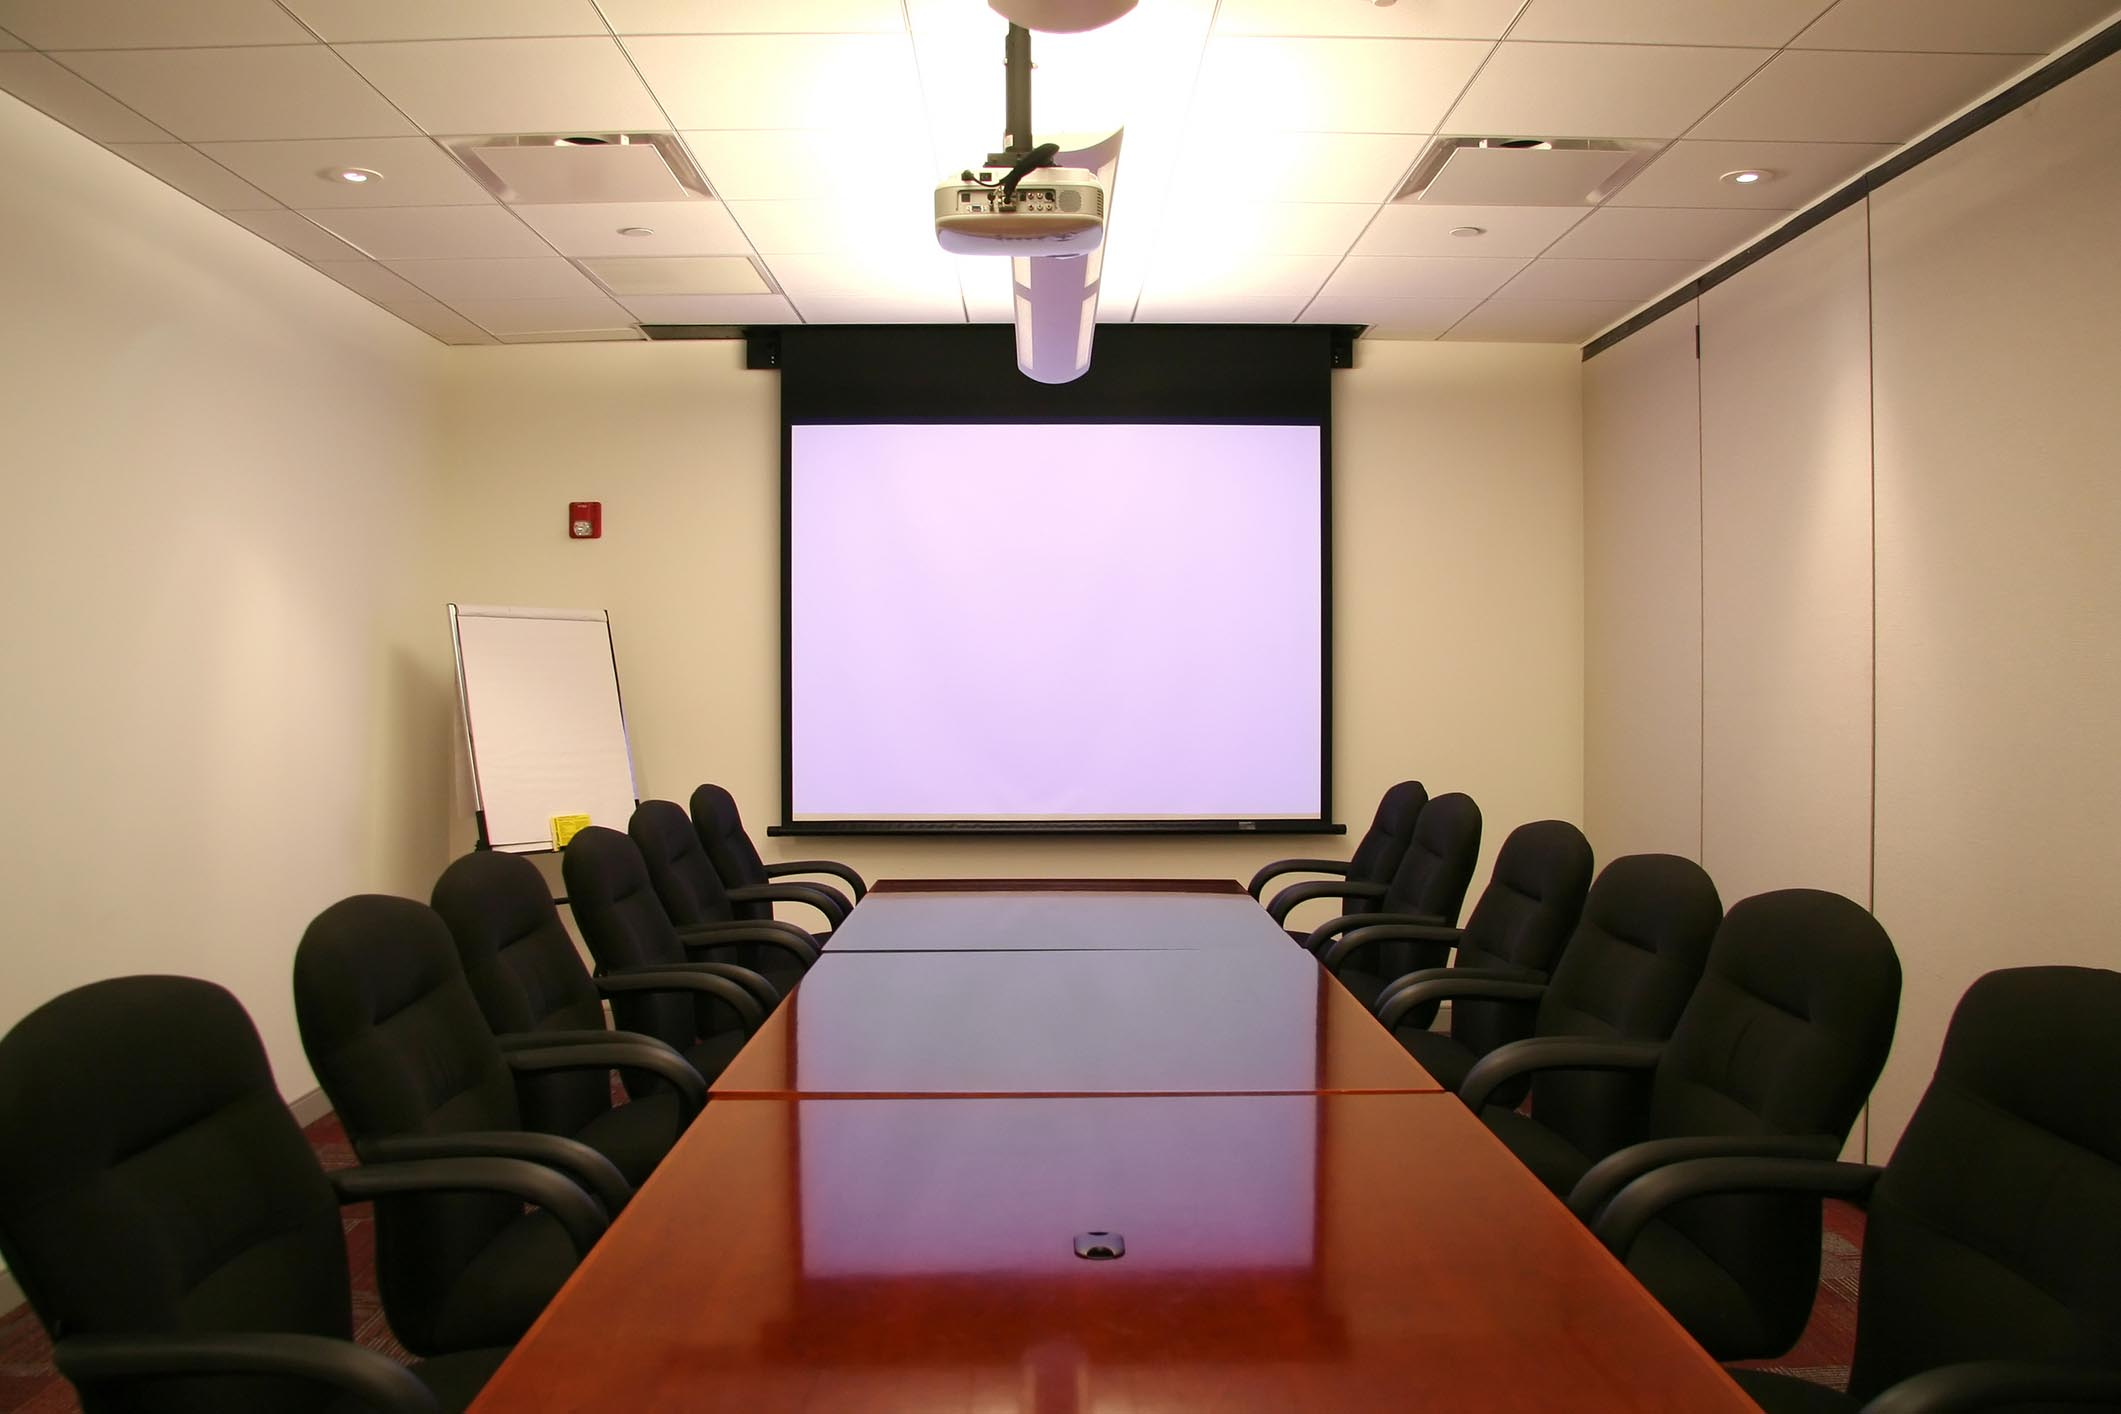 Projector For Conference Room In India